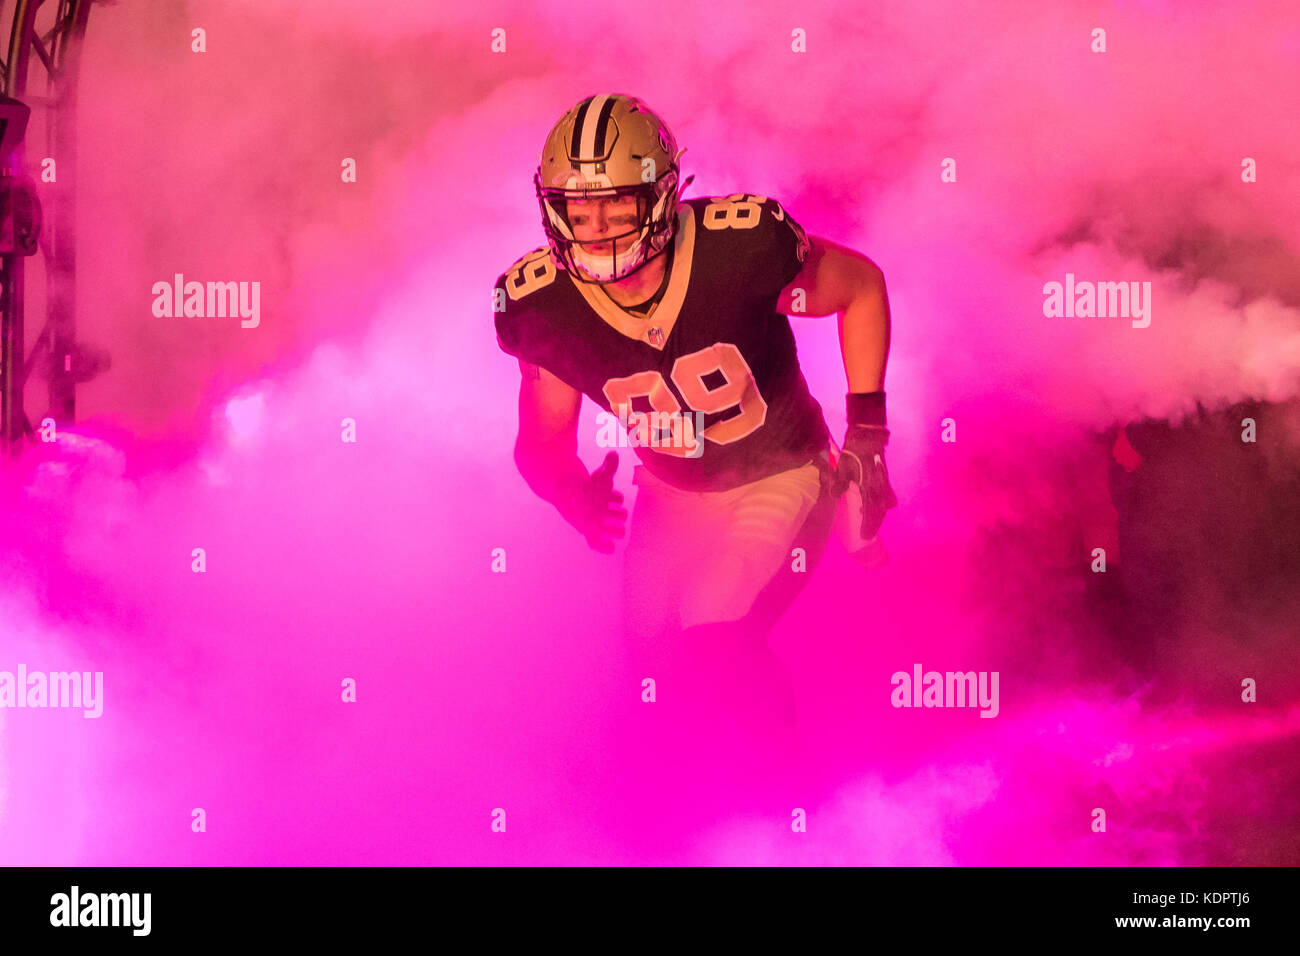 finest selection 226c6 d6b85 October 15, 2017 - New Orleans Saints tight end Josh Hill ...